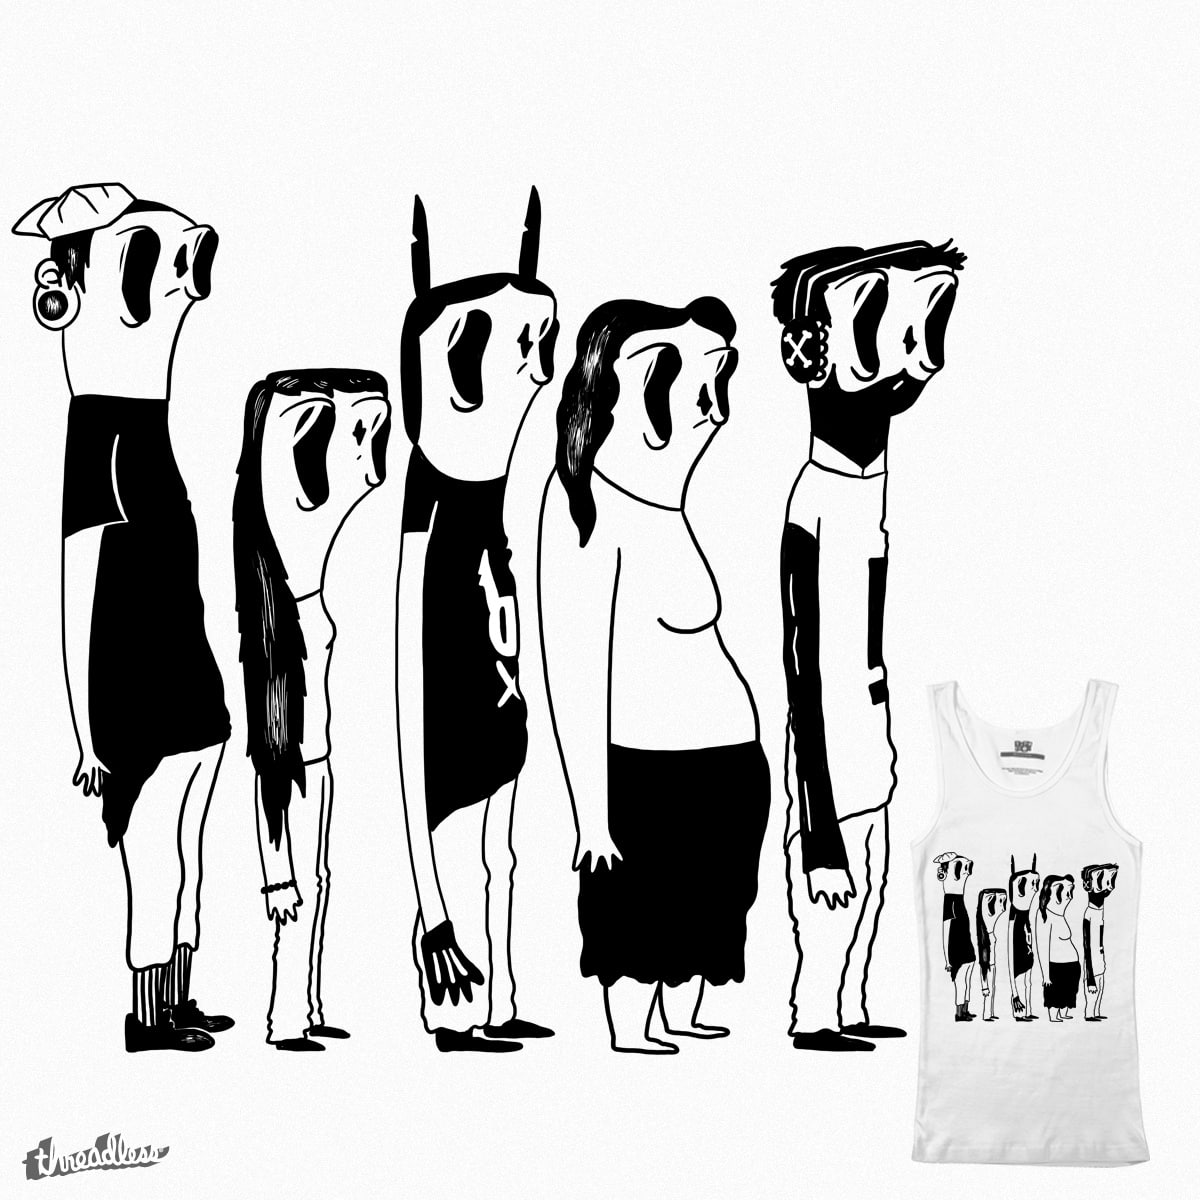 queue by Radletimtam on Threadless